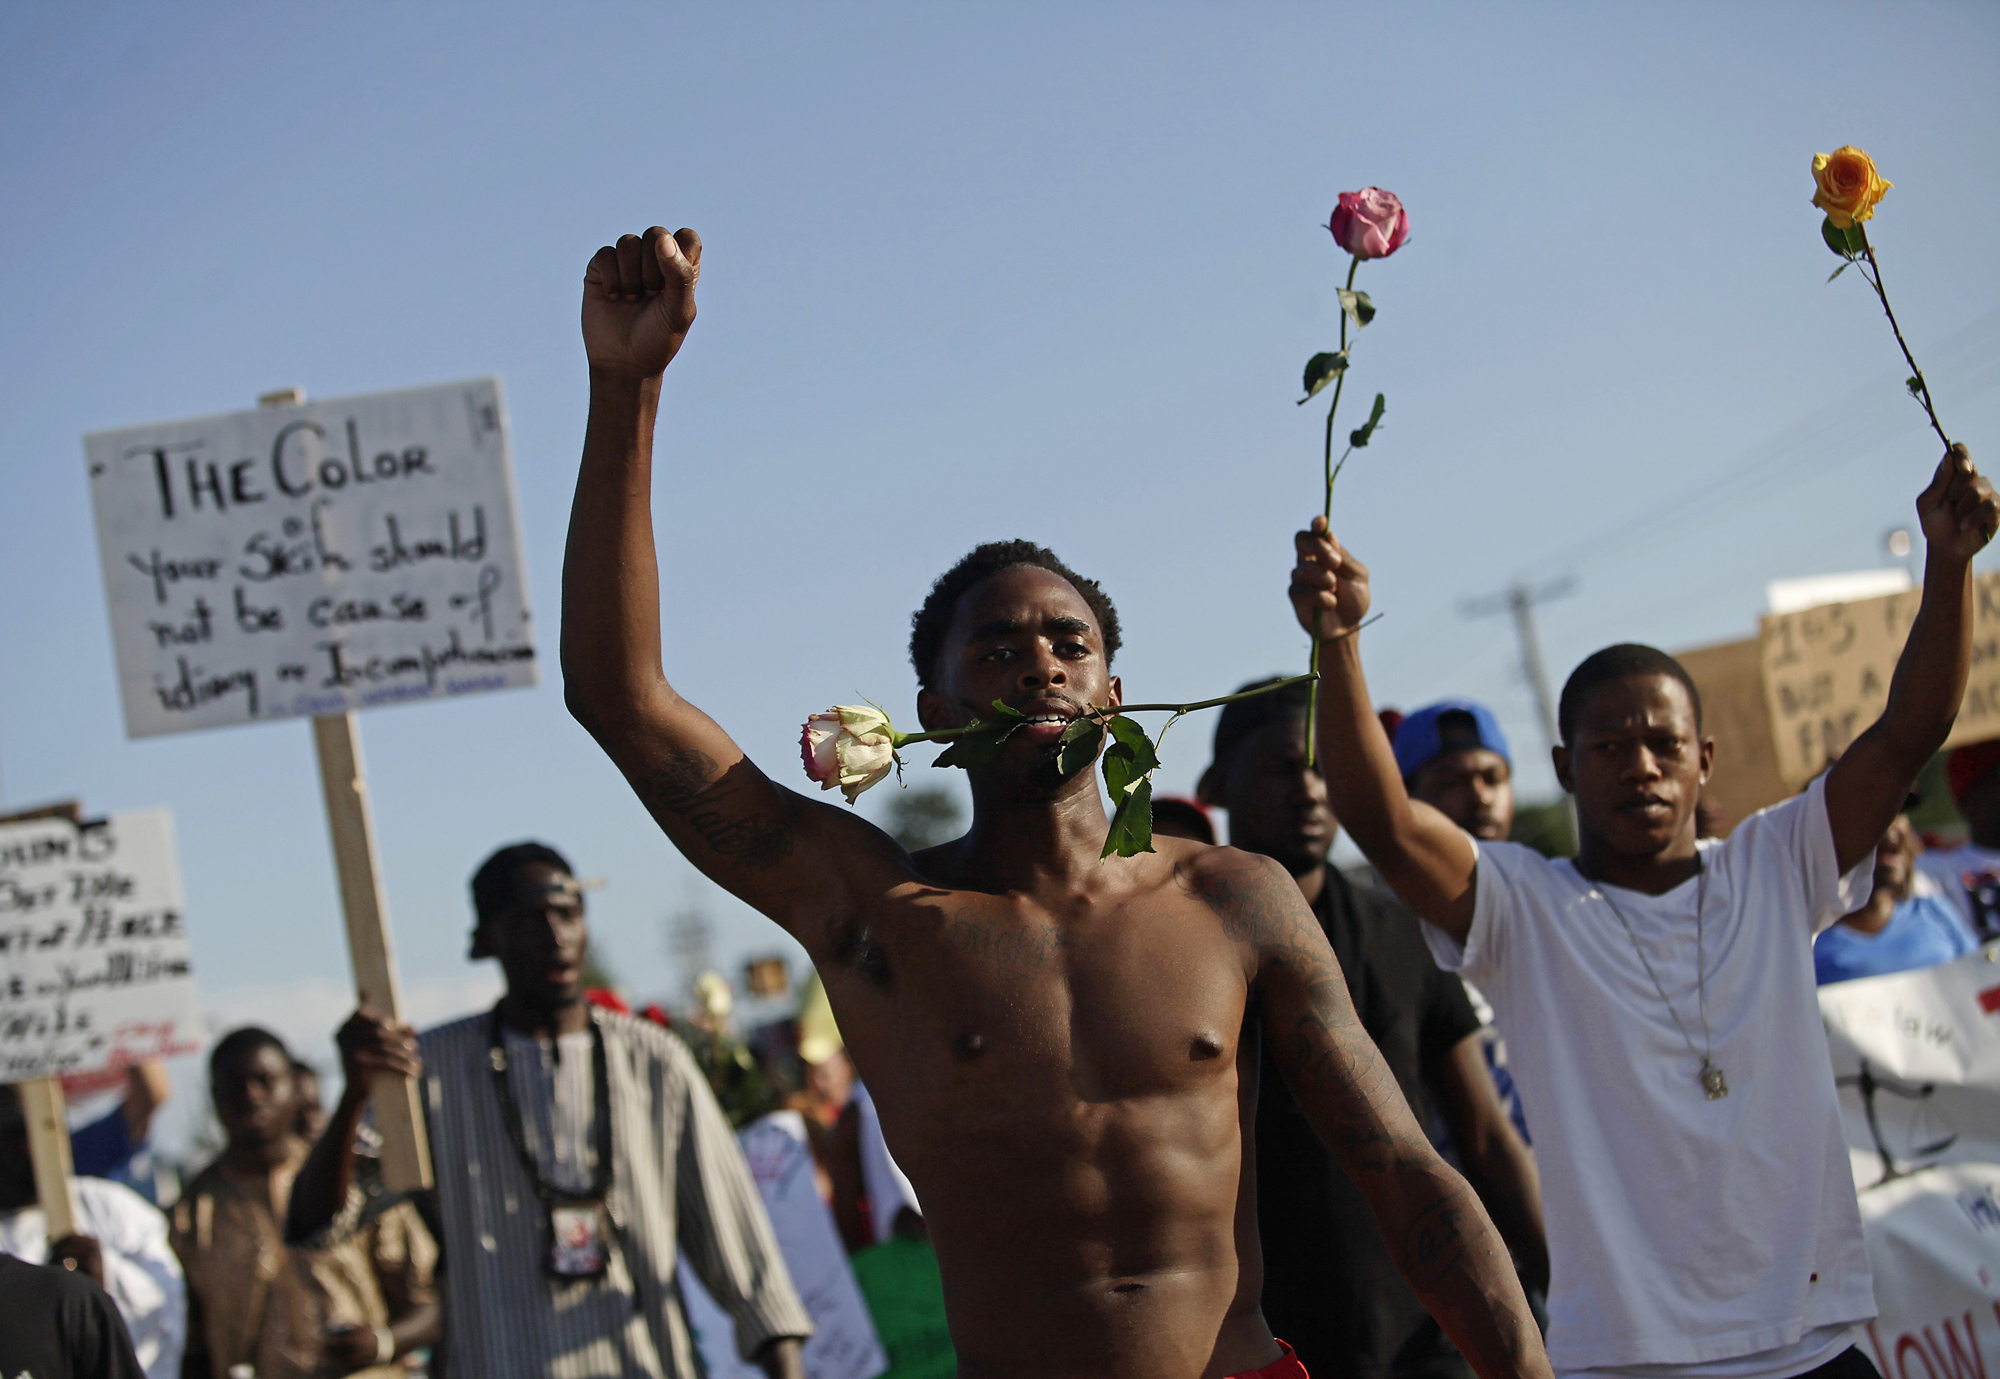 Demonstrators protest against the fatal shooting of Michael Brown in Ferguson, Mo. Aug. 19, 2014.